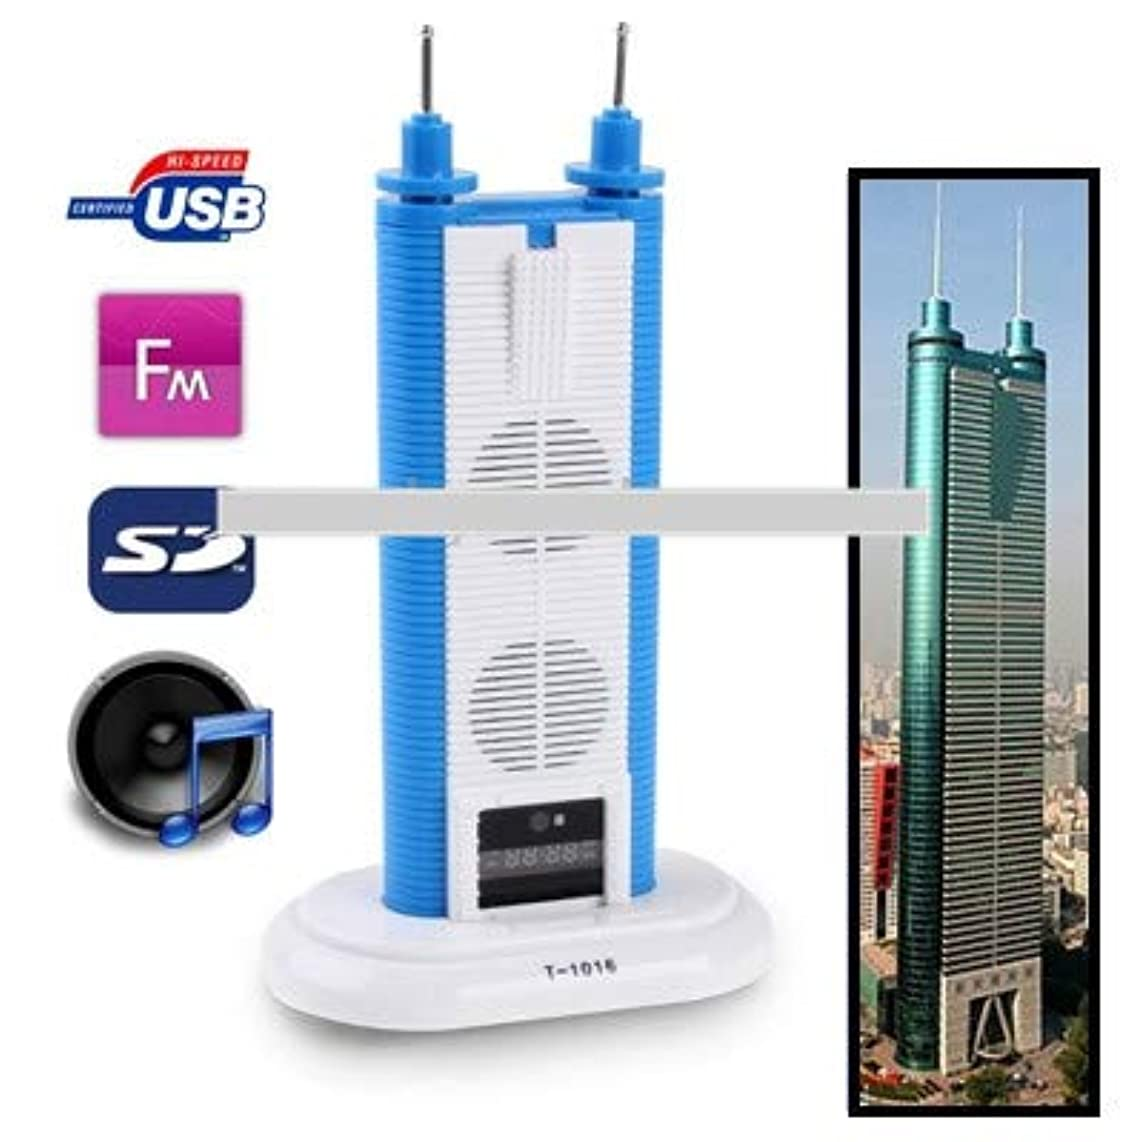 Card Reader Speaker with FM Radio, Built-in Rechargeable Battery, Support TF Card and USB Flash Disk(Dark Blue)